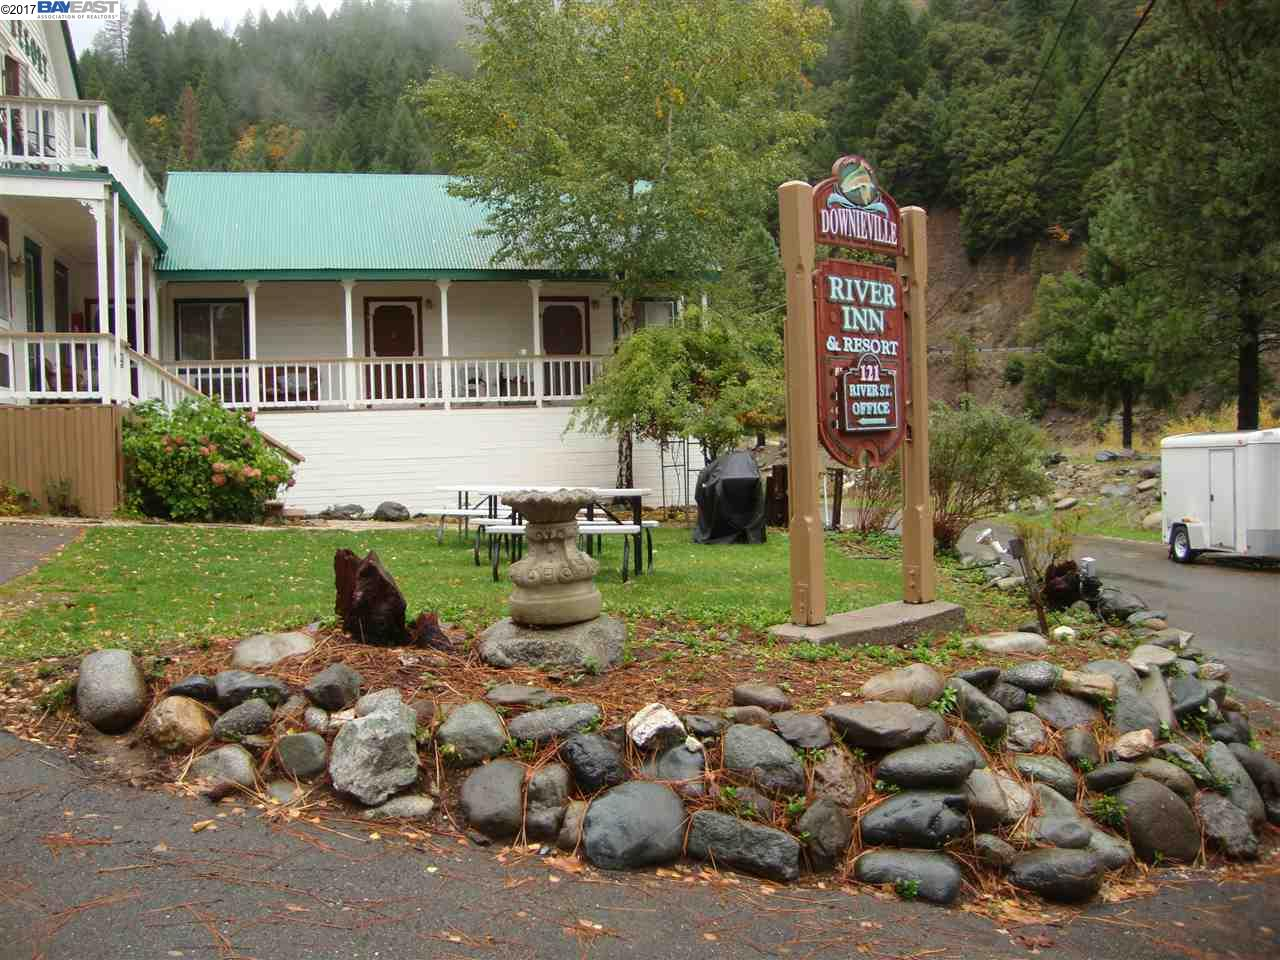 Commercial for Sale at 121 River Street Downieville, California 95936 United States